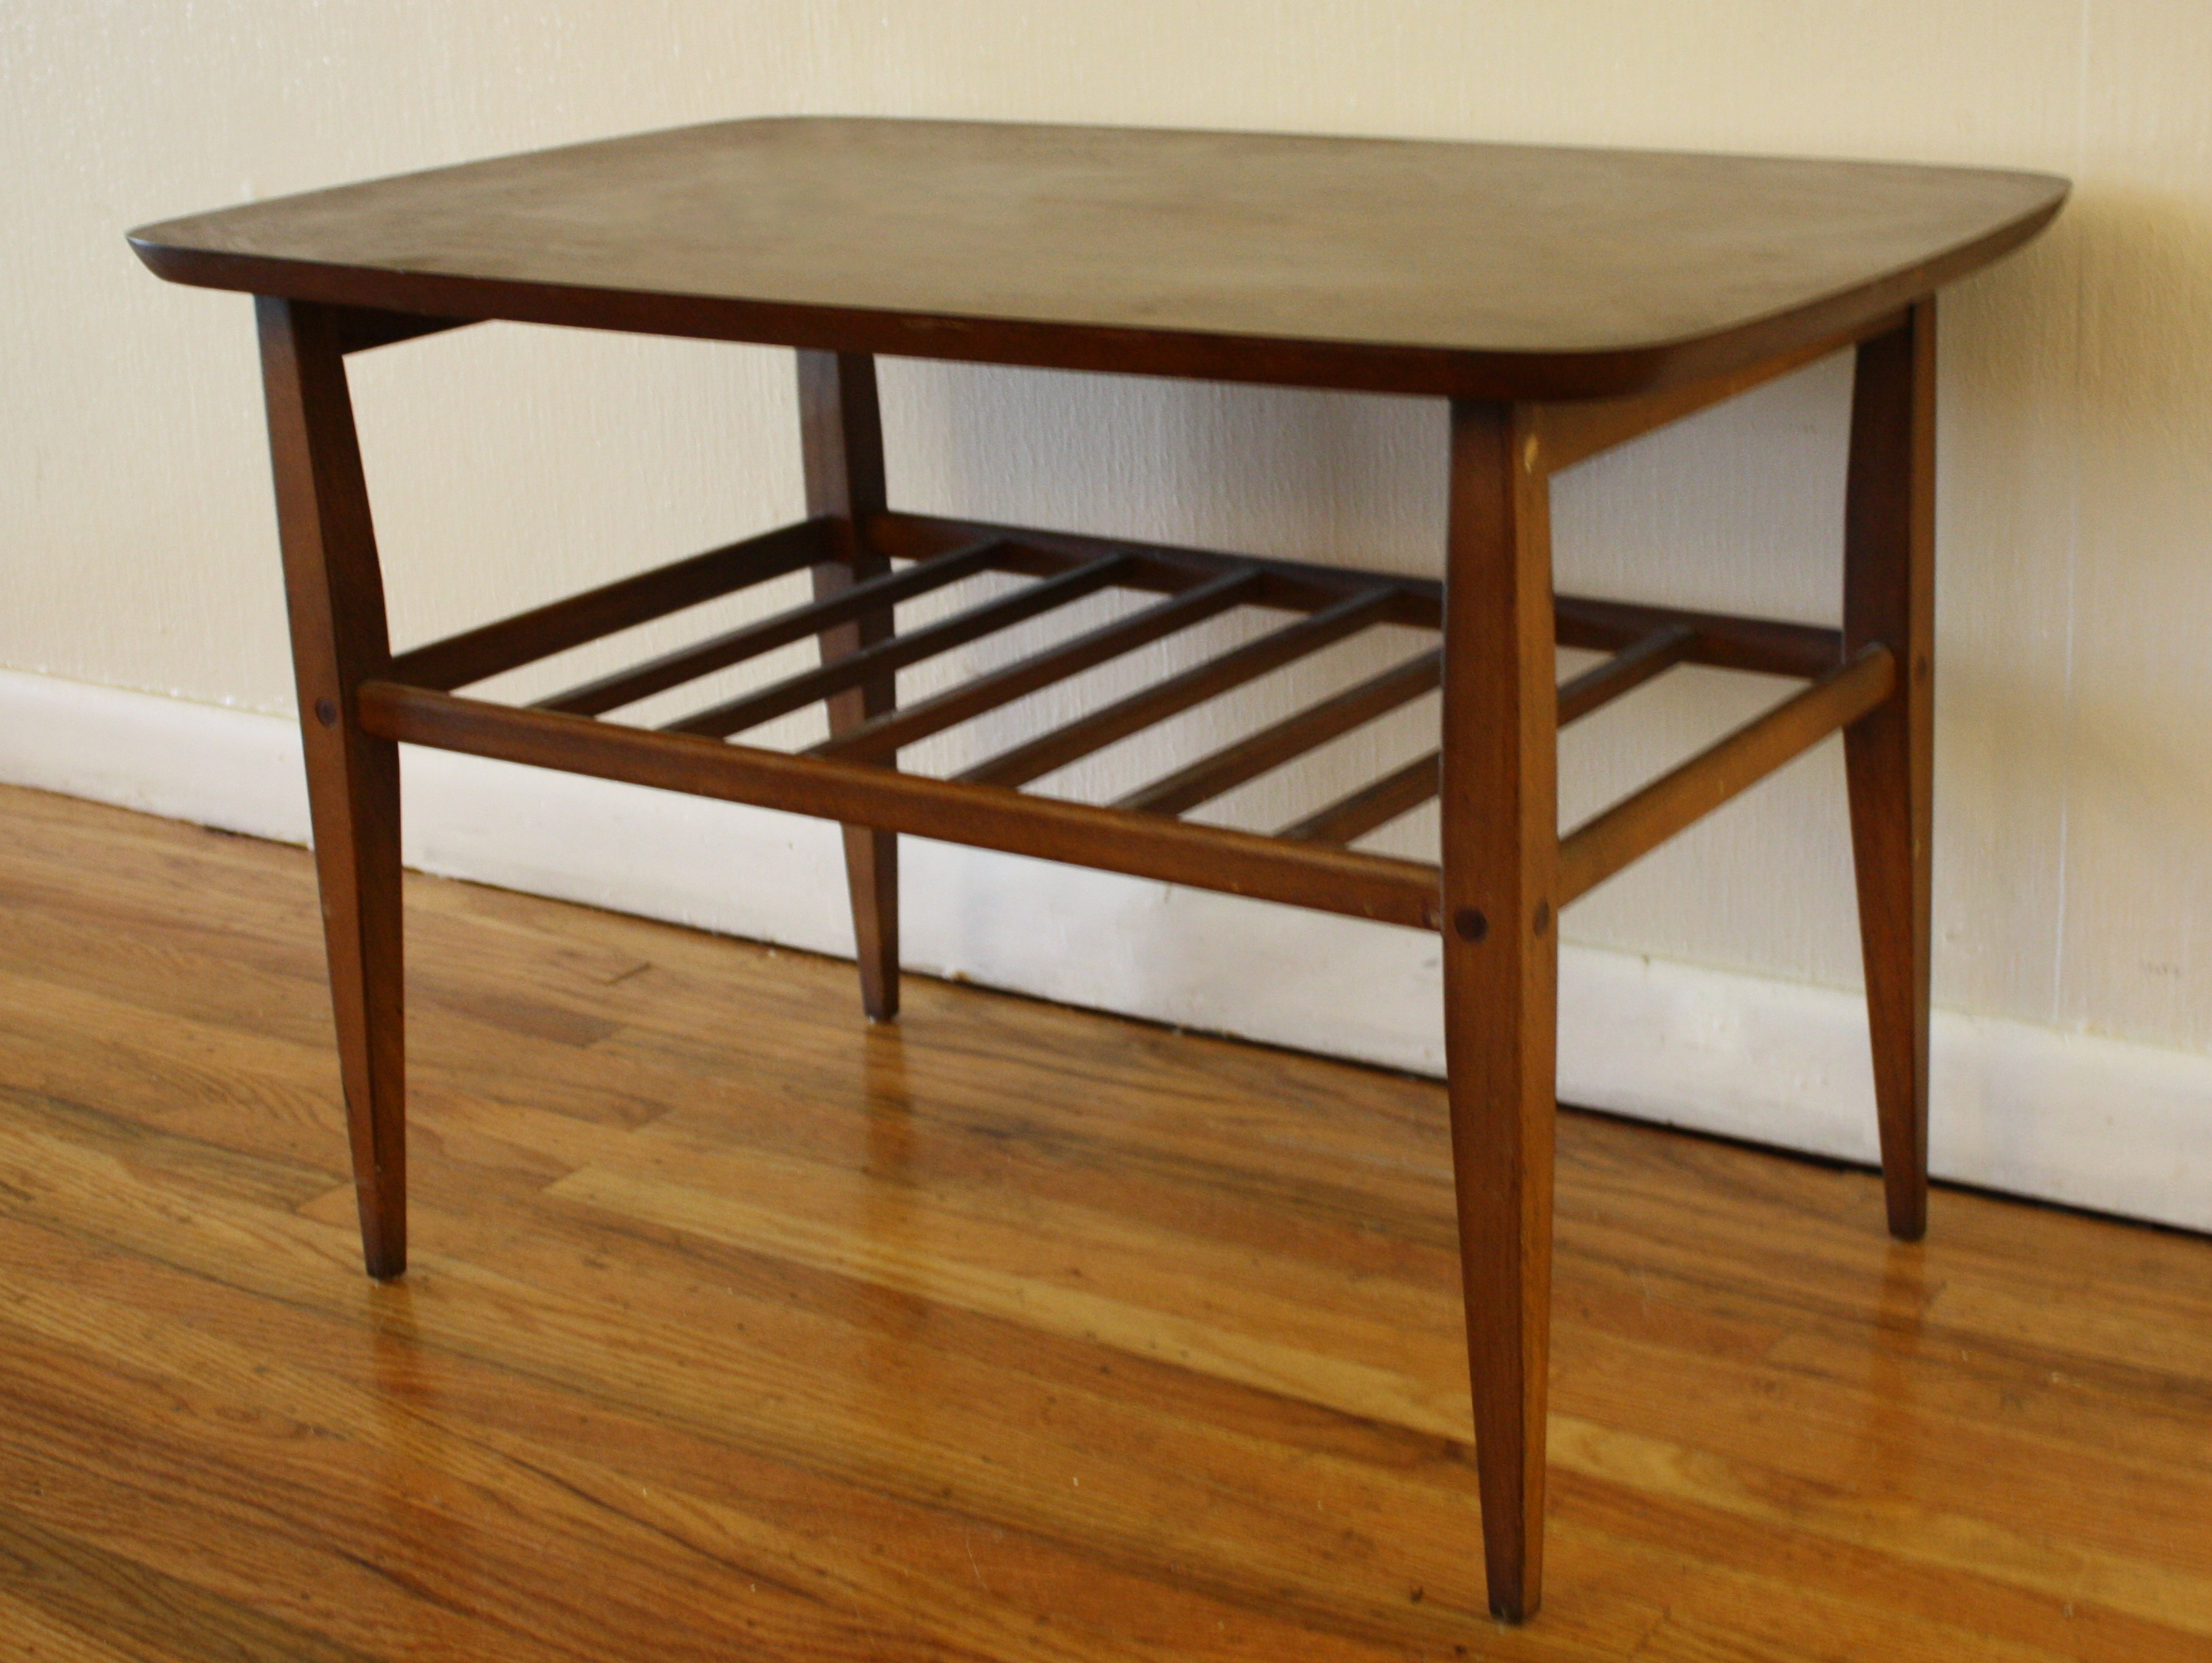 Mid century modern coffee and side table with slatted shelf picked vintage Coffee table and side table